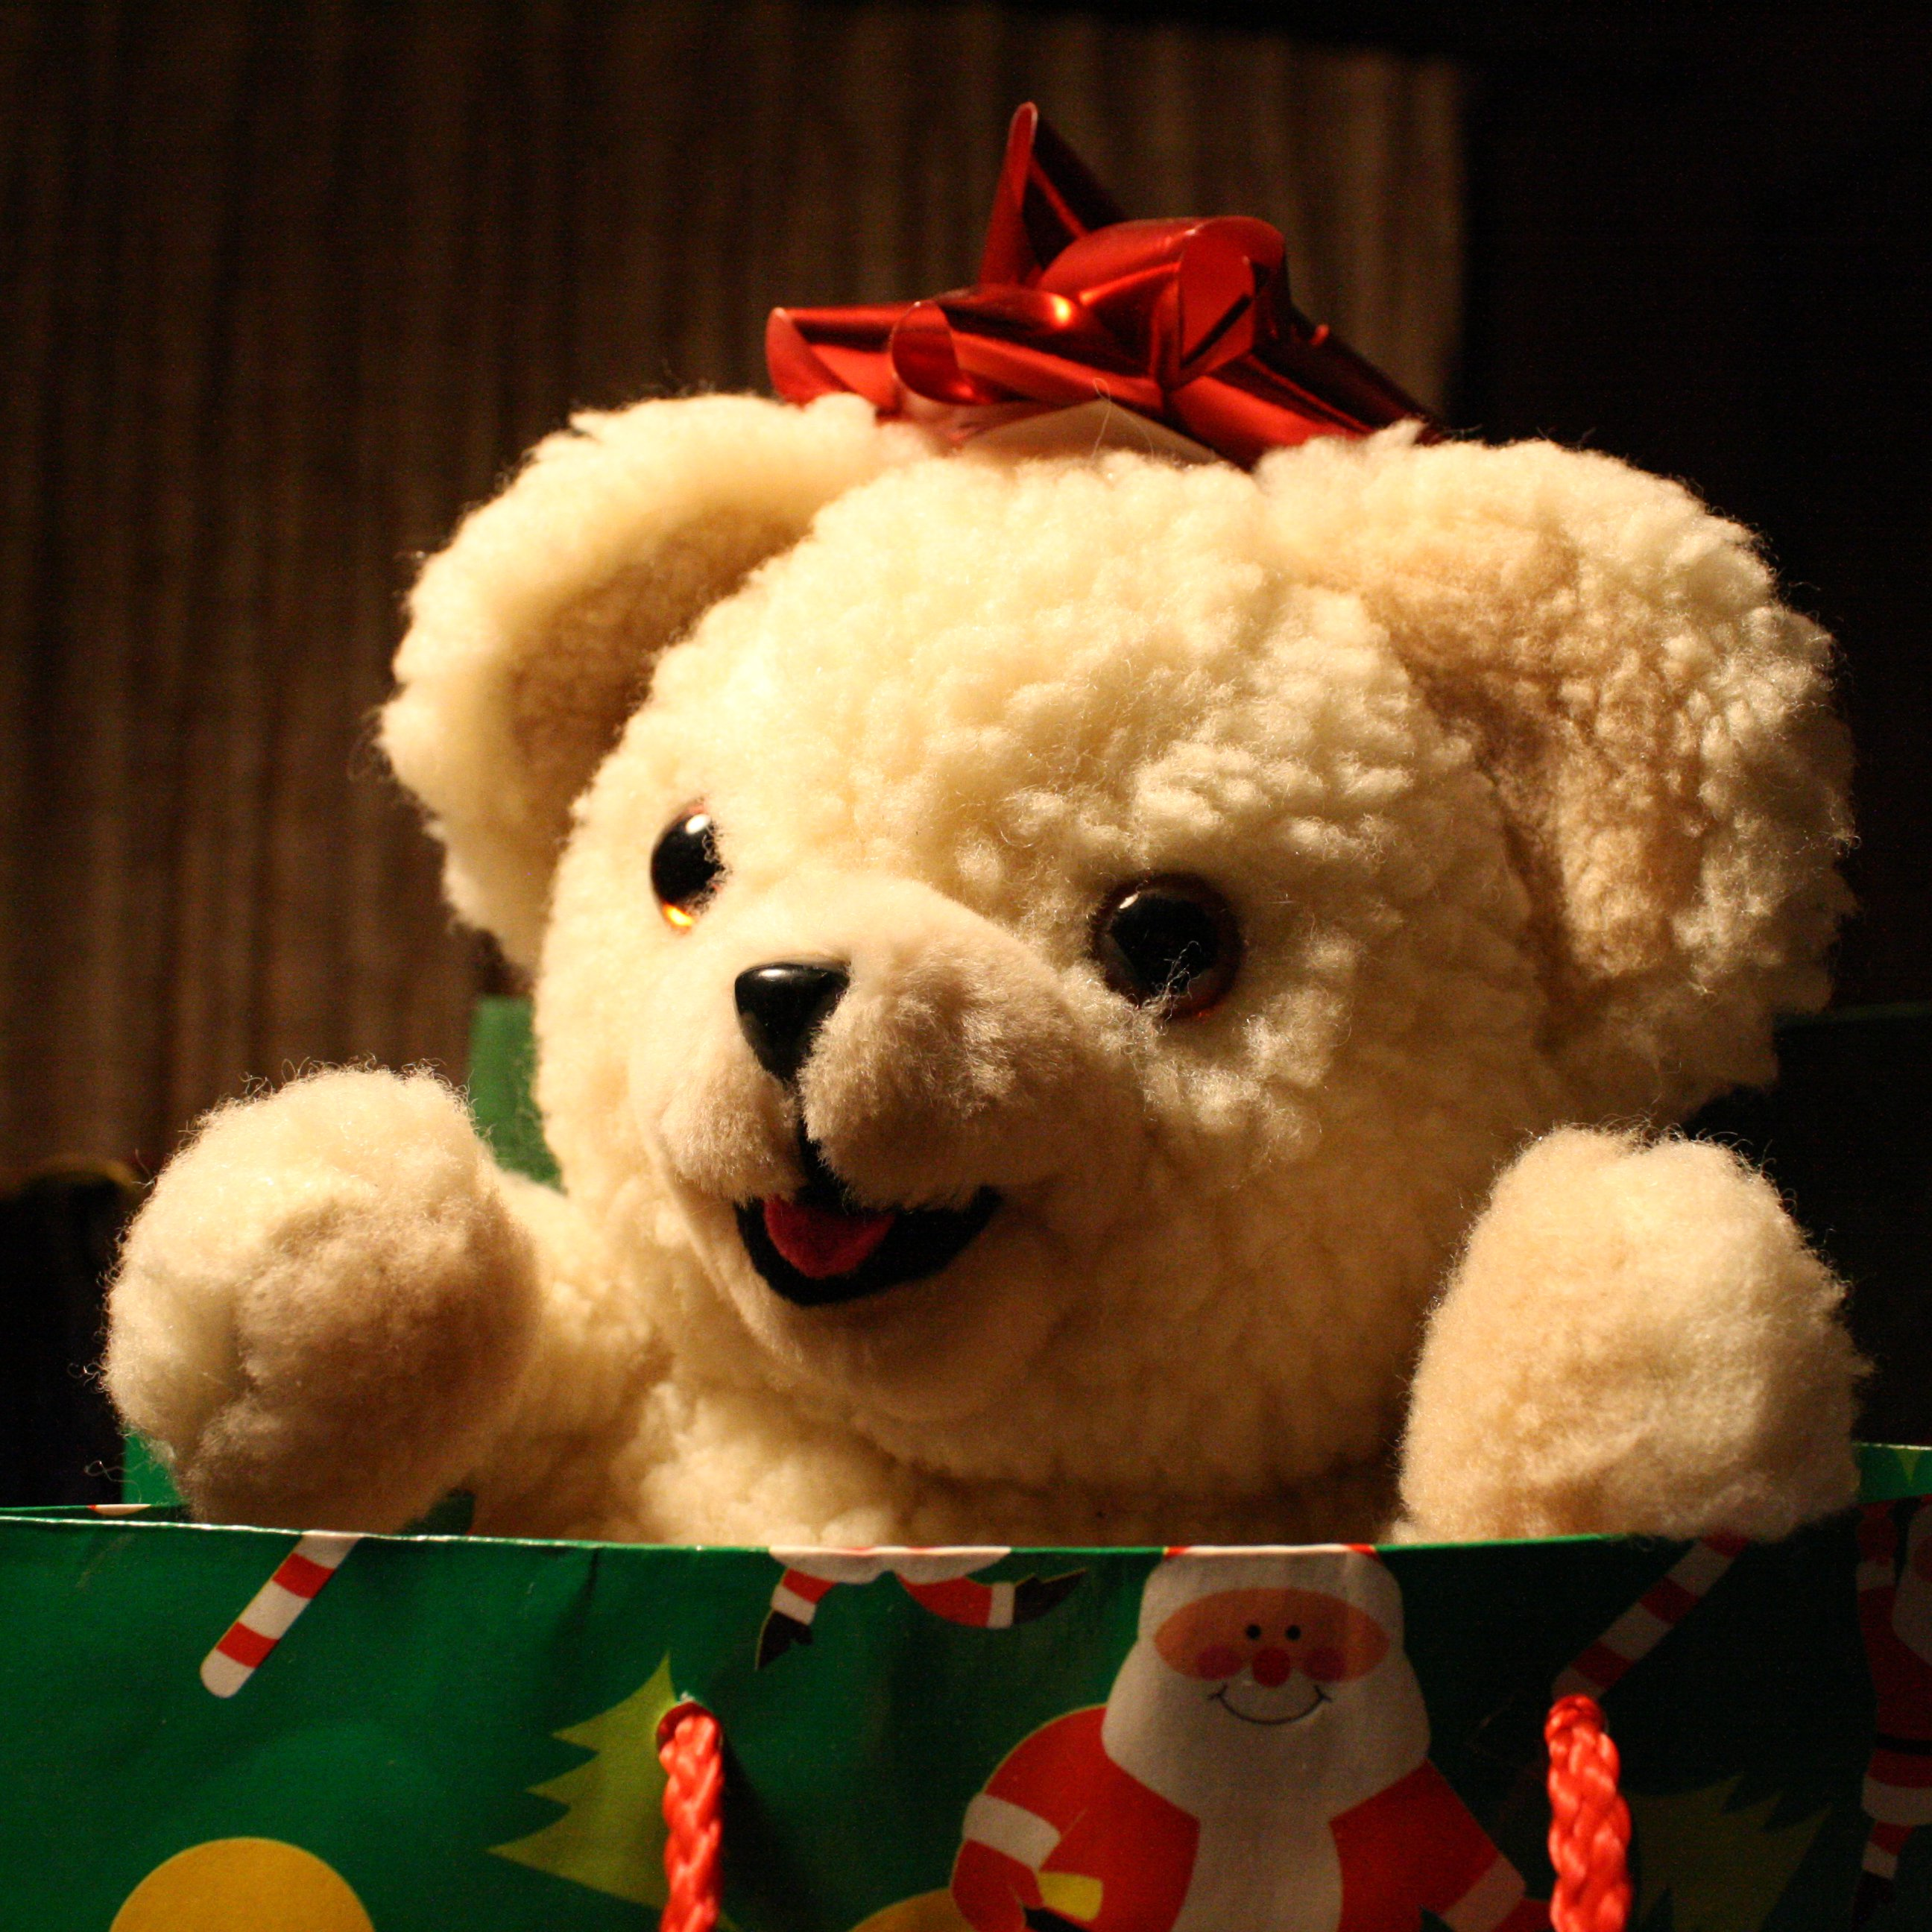 Christmas Teddy Bear Picture | Free Photograph | Photos Public Domain